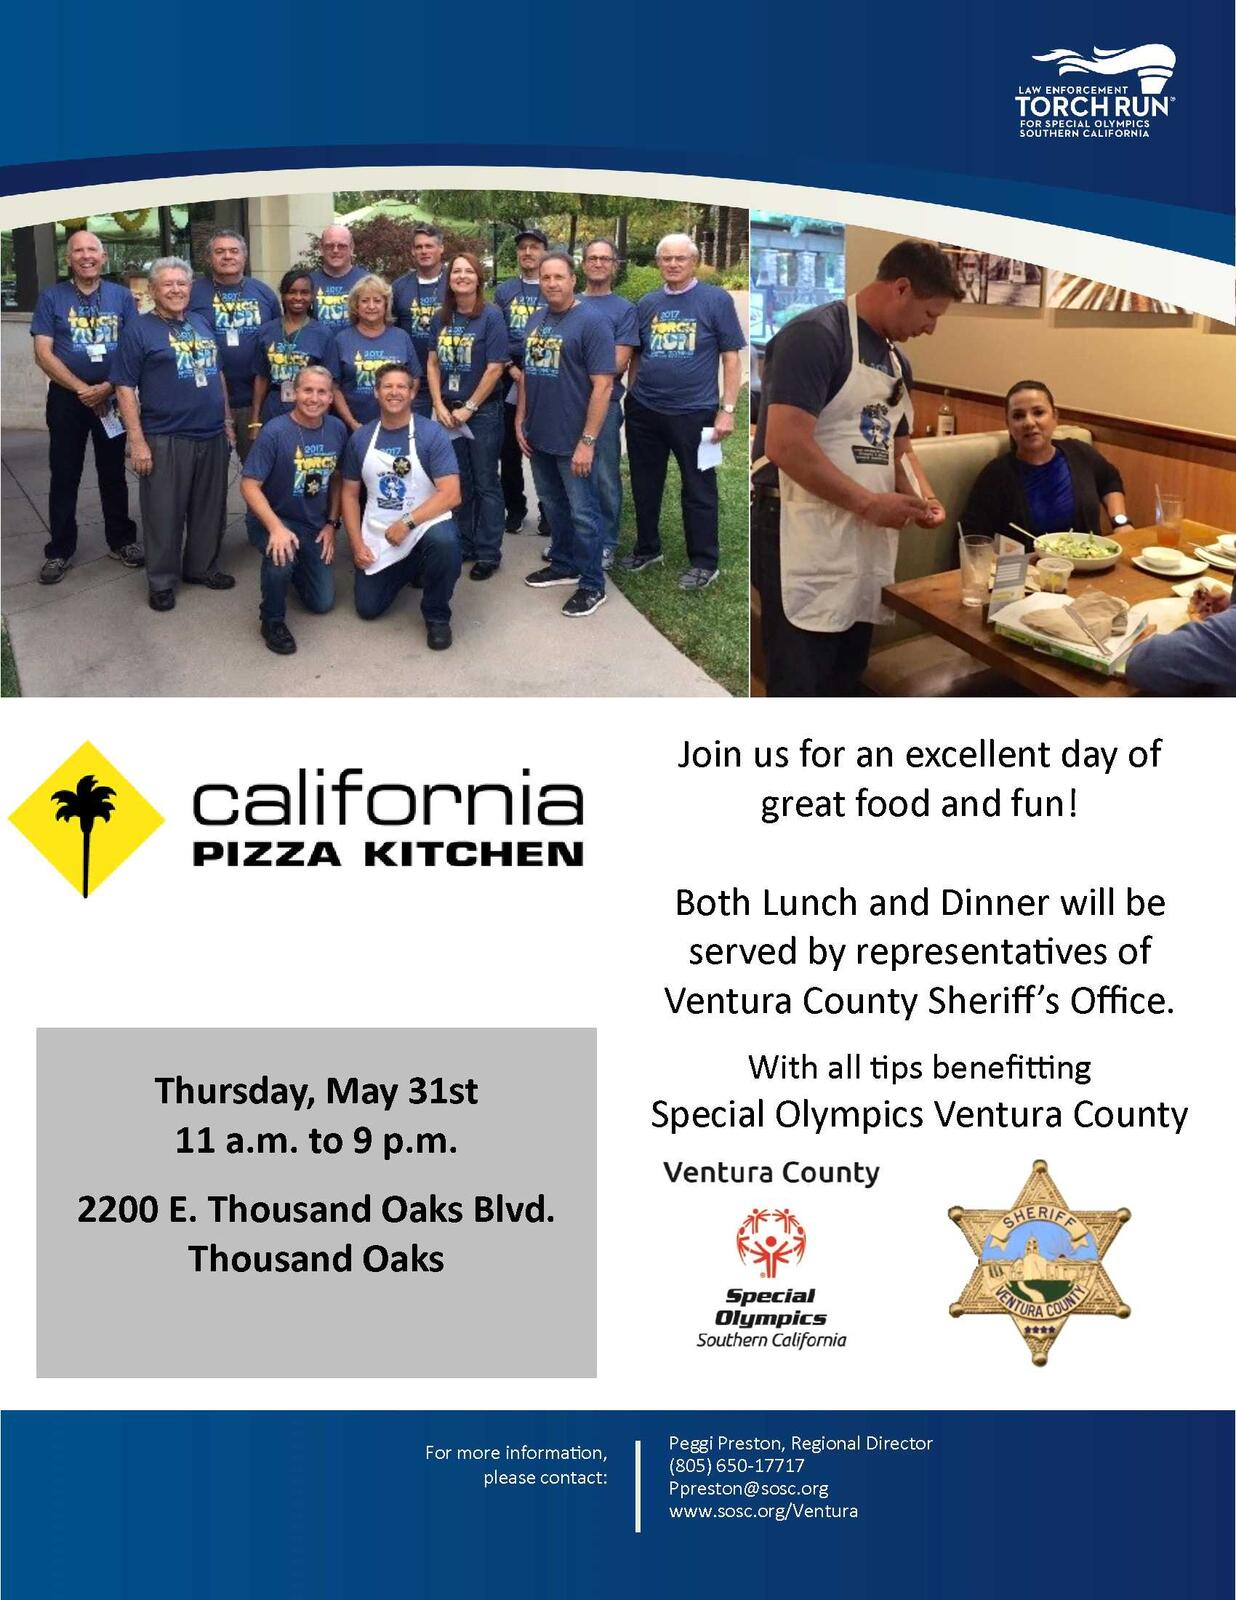 SAVE THE DATE! May 31, 2018: Tip-A-Cop at Thousand Oaks California ...